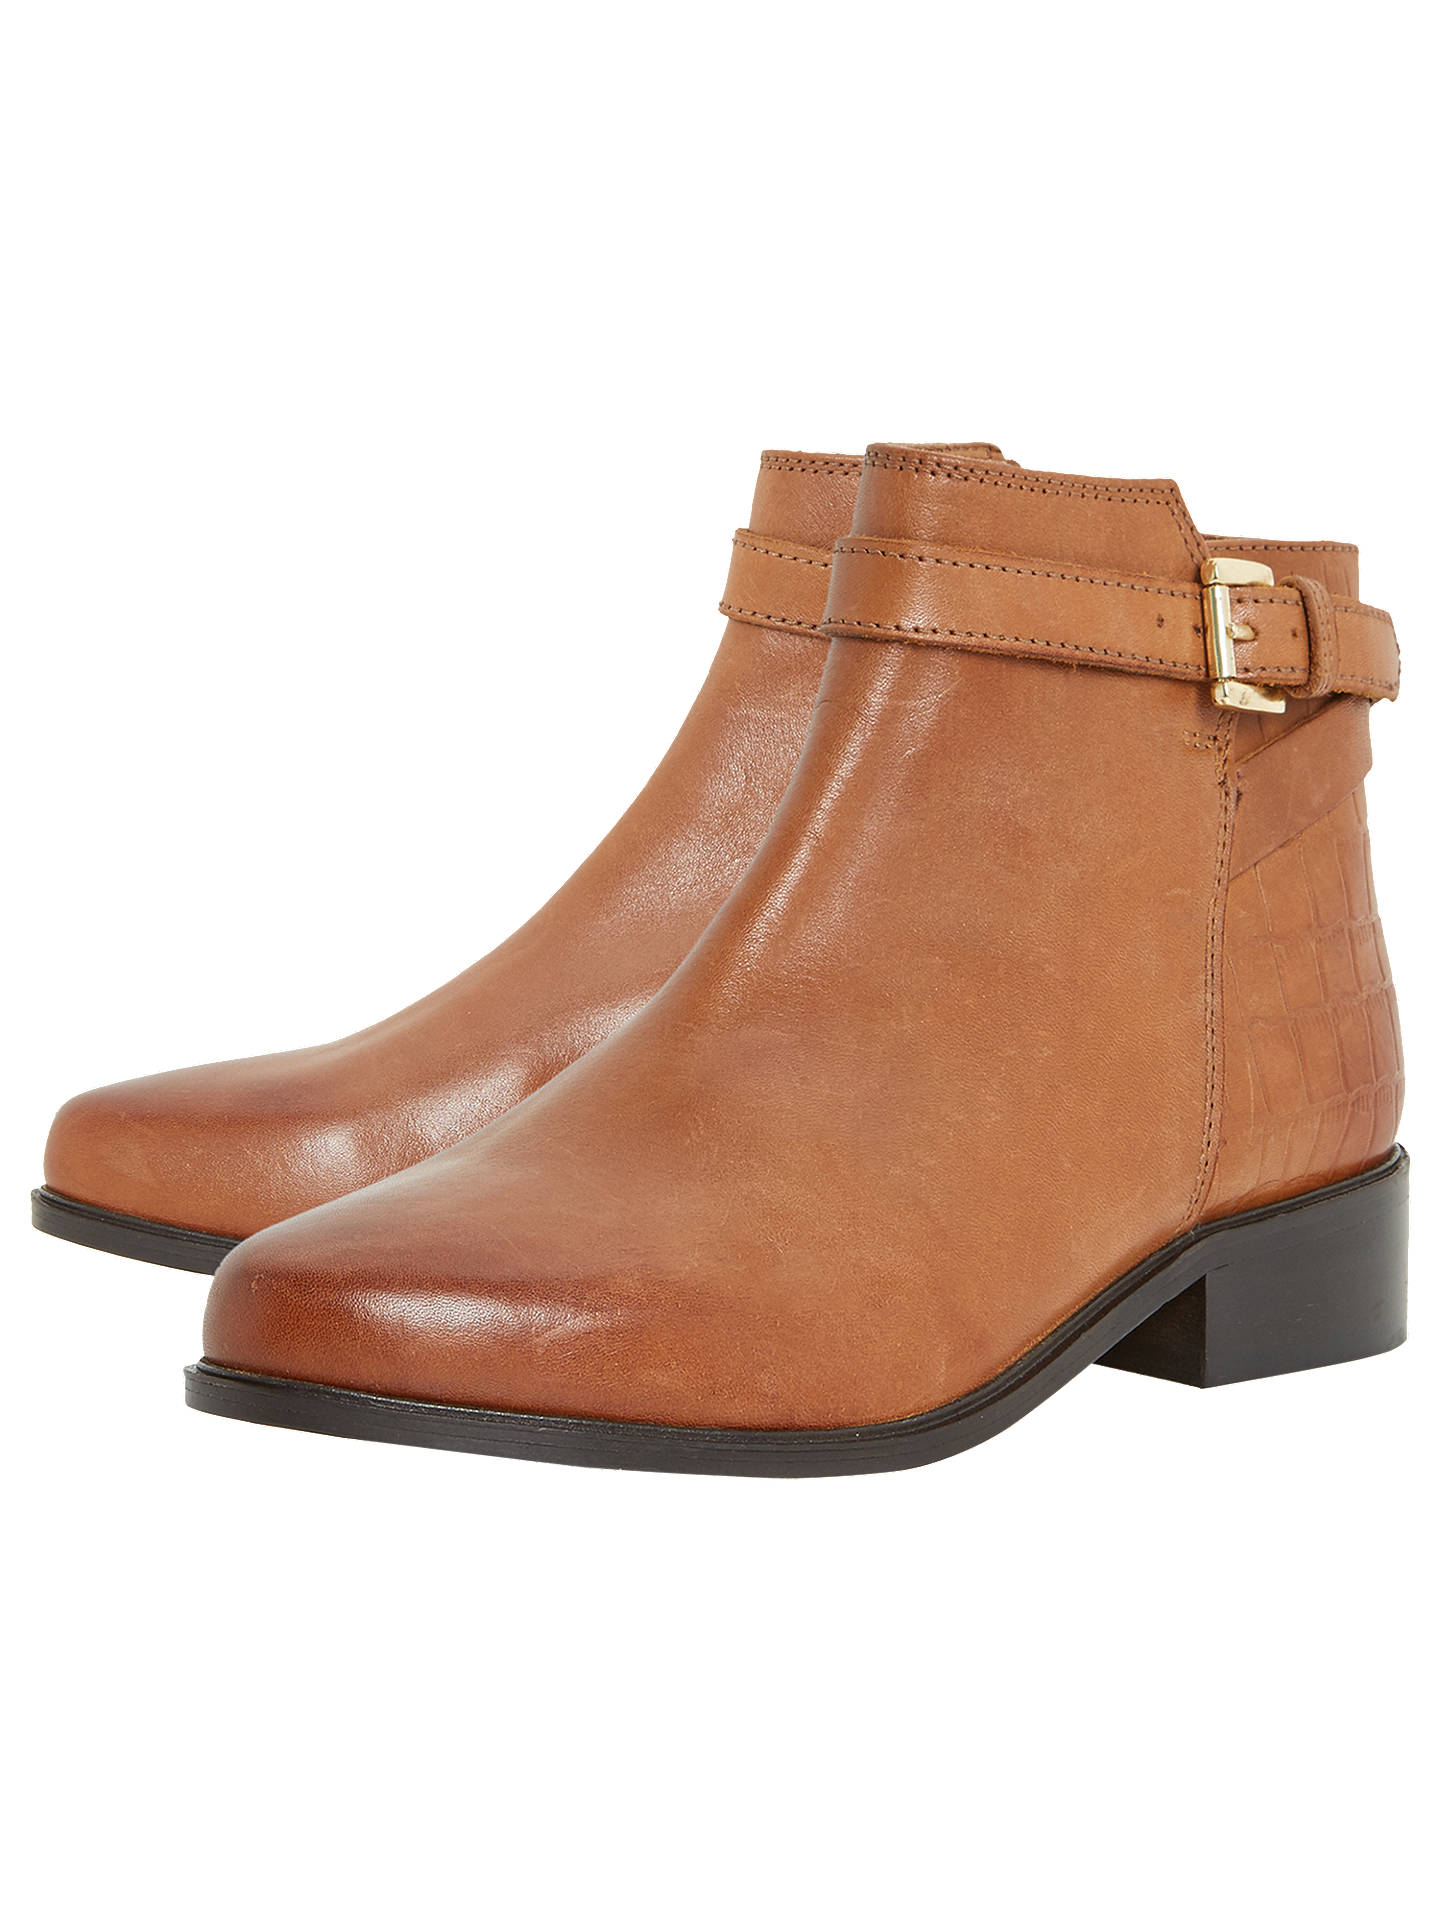 62a107df7d1 Wide At John Lewis Boots Ankle amp  Dune Poppy Tan Partners Fit 7Y0dnABq